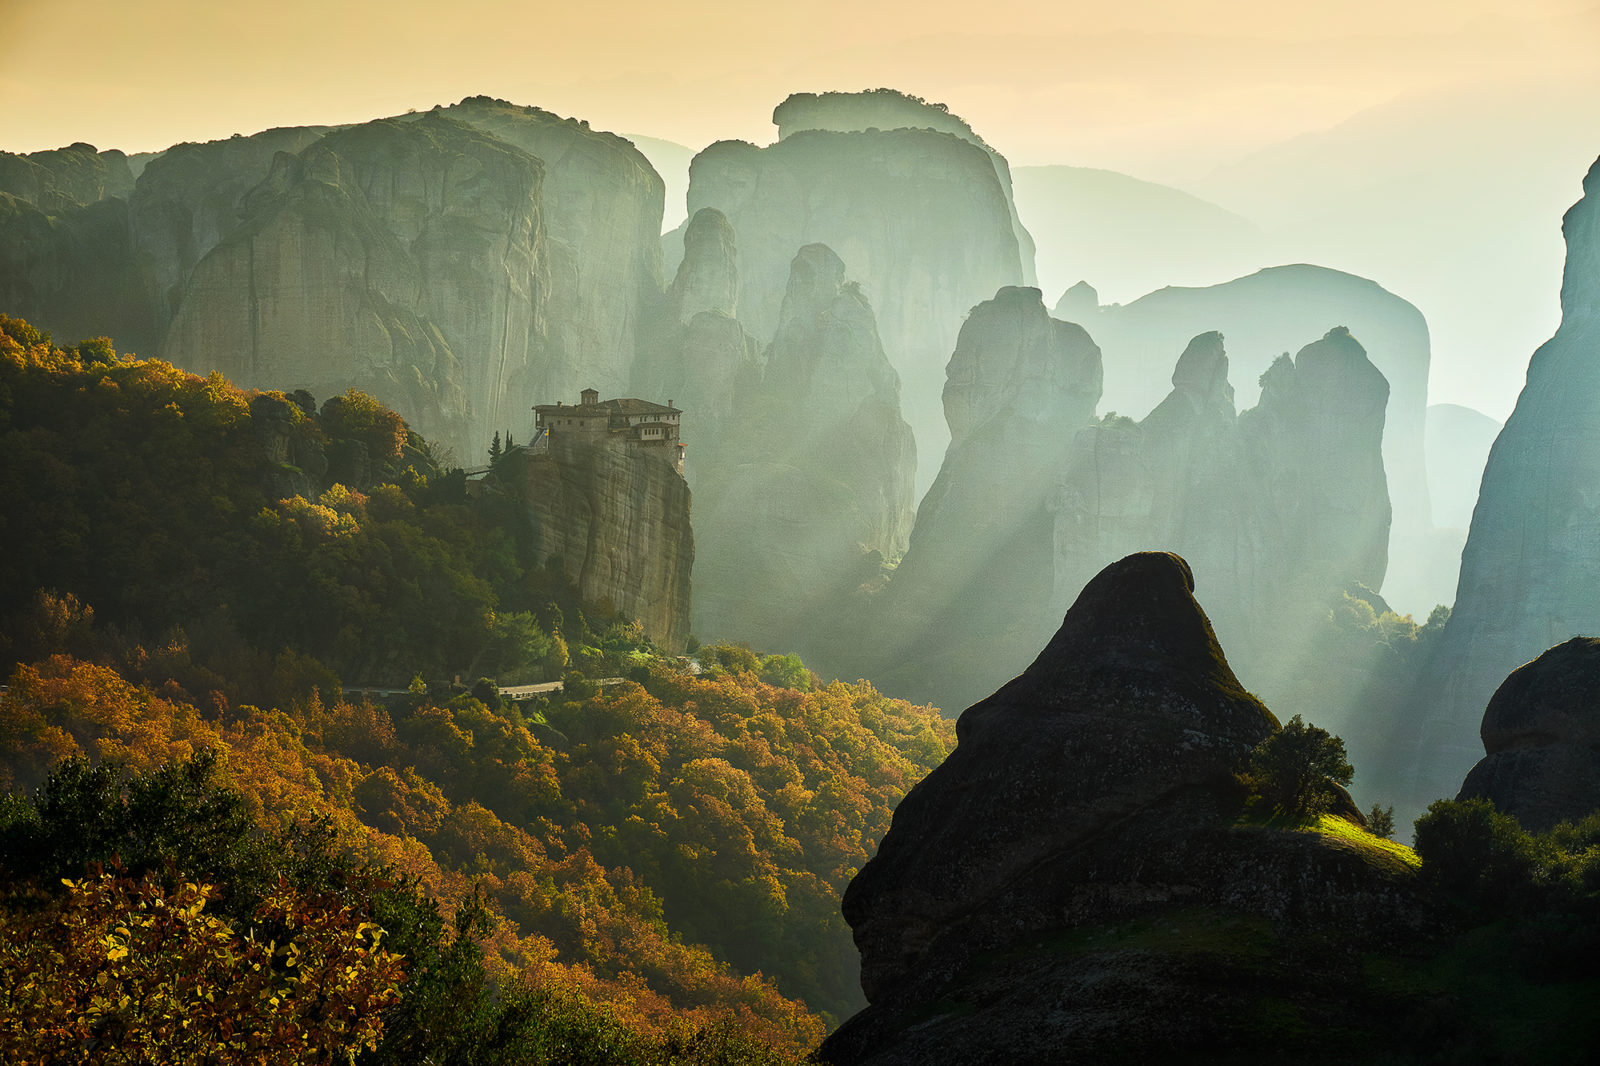 Chasing the light at Meteora